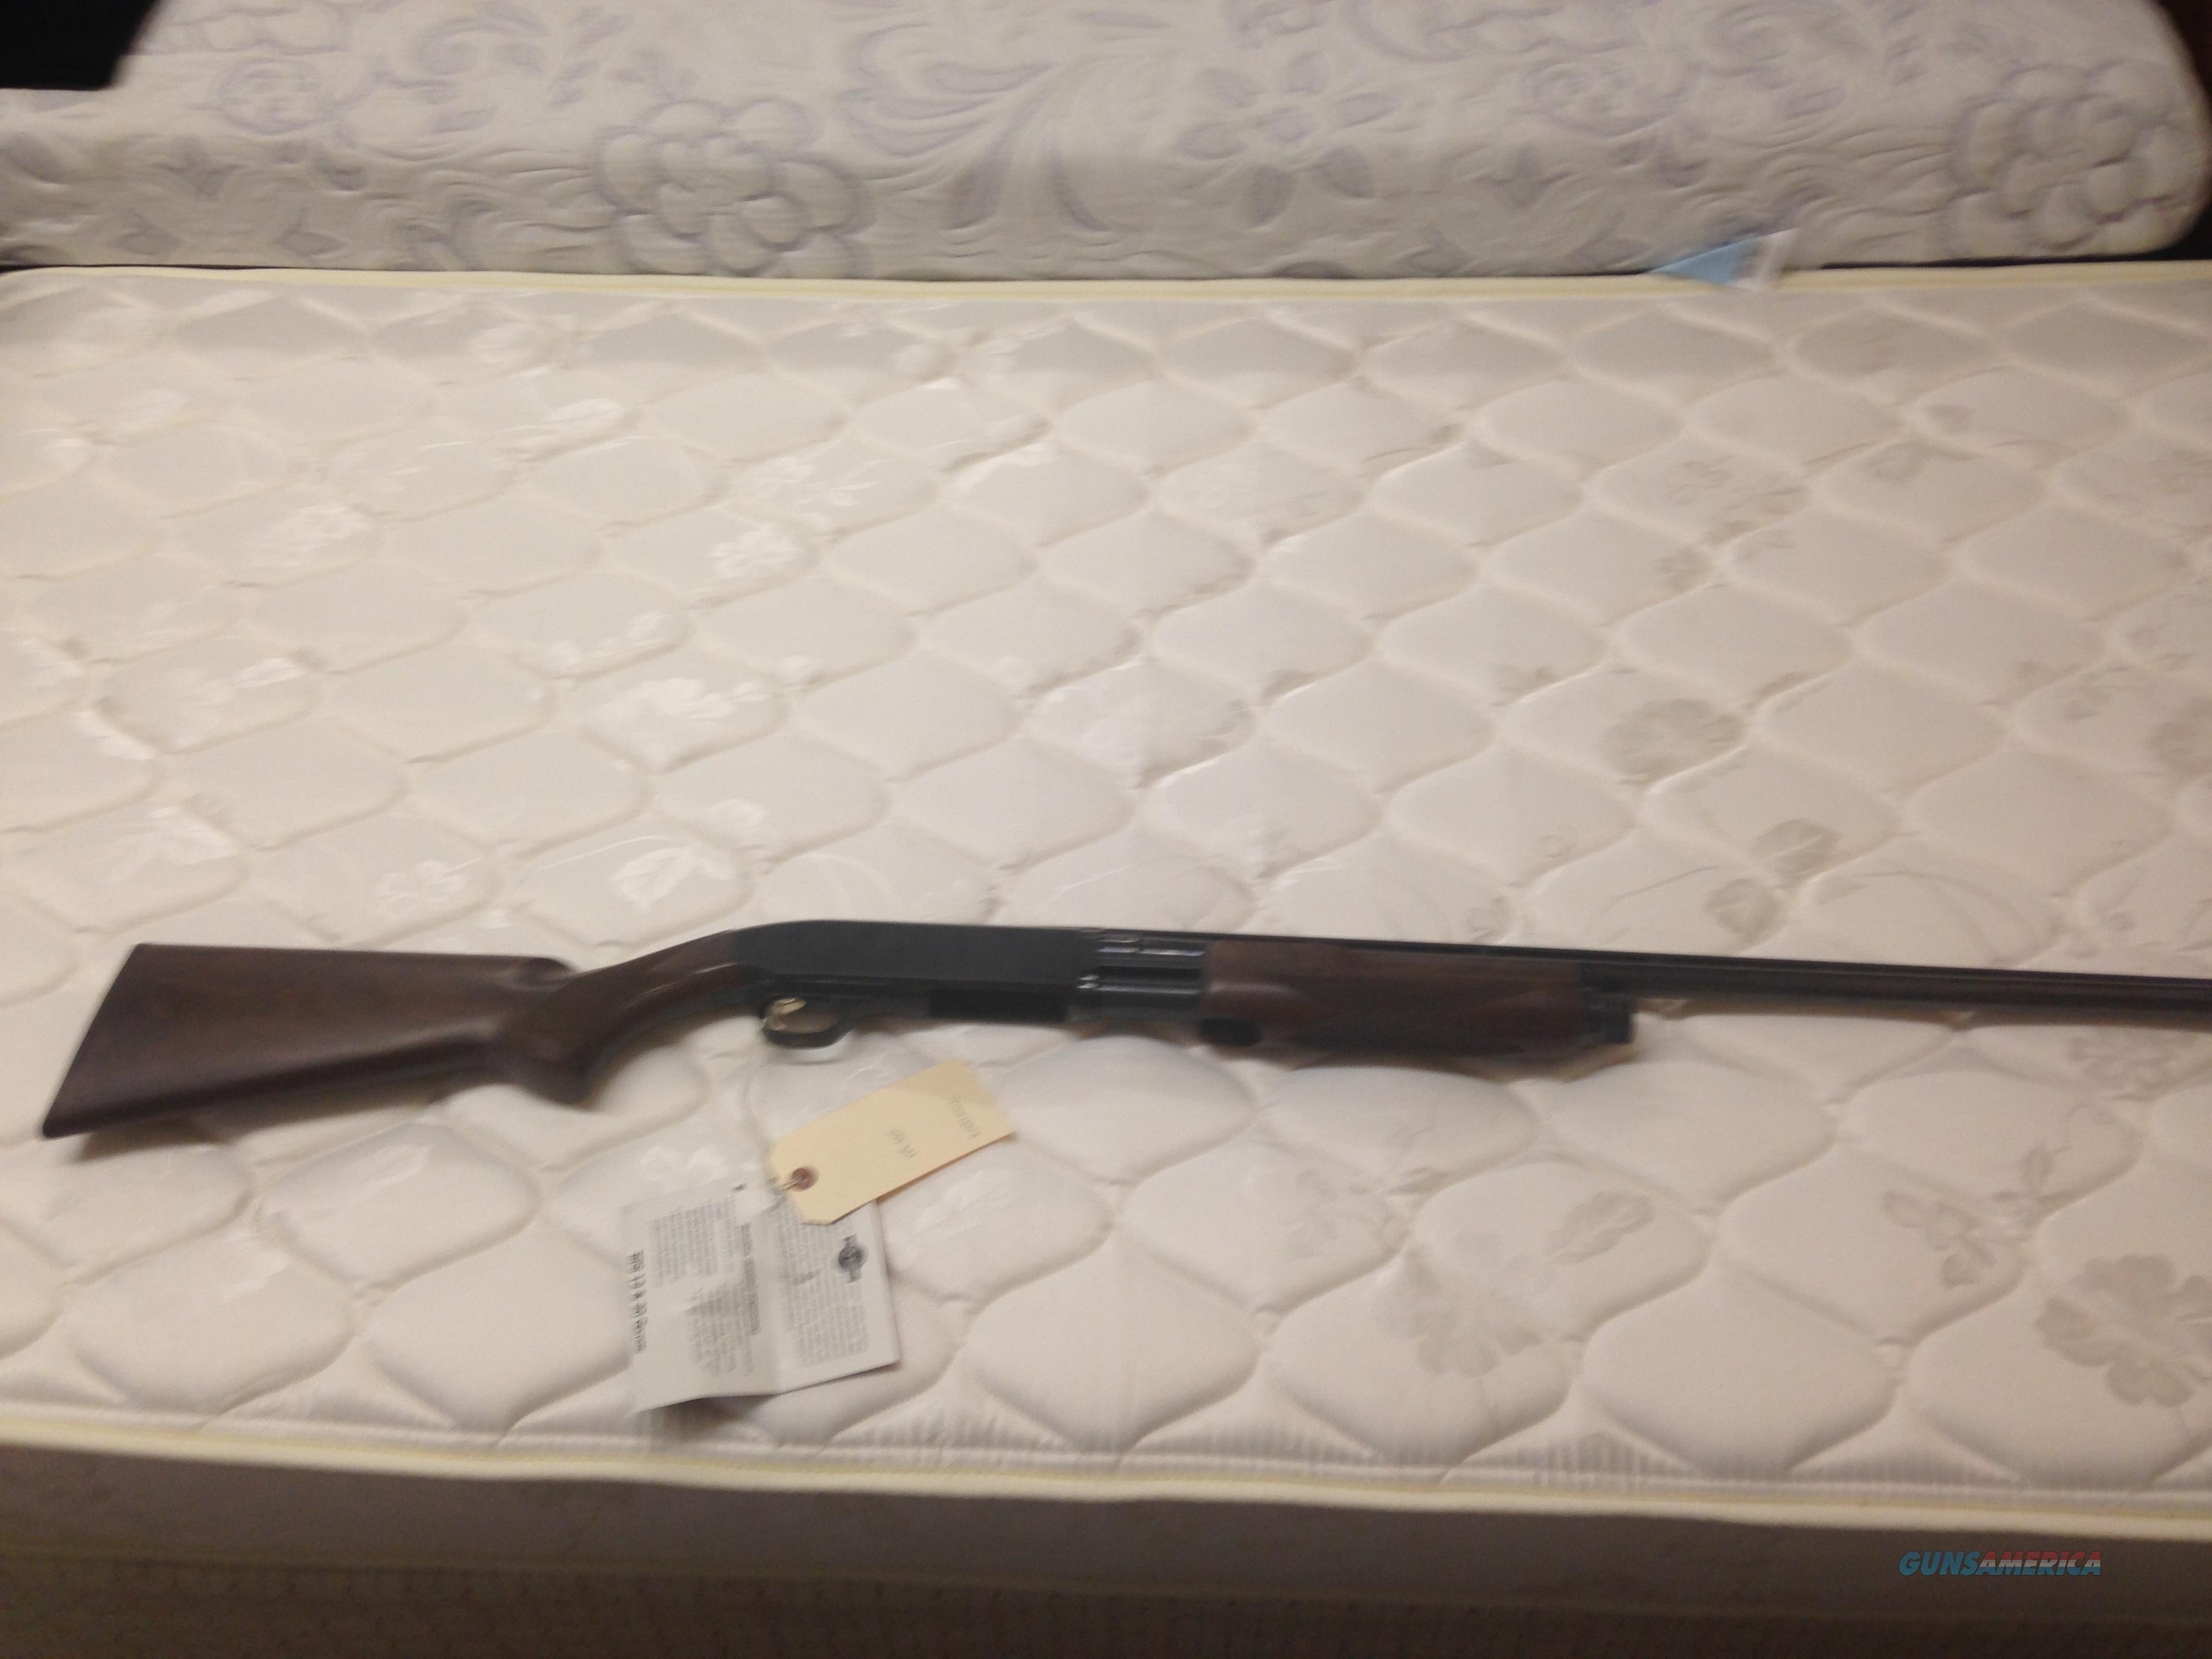 Browning BPS  20 ga.  Guns > Shotguns > Browning Shotguns > Pump Action > Hunting